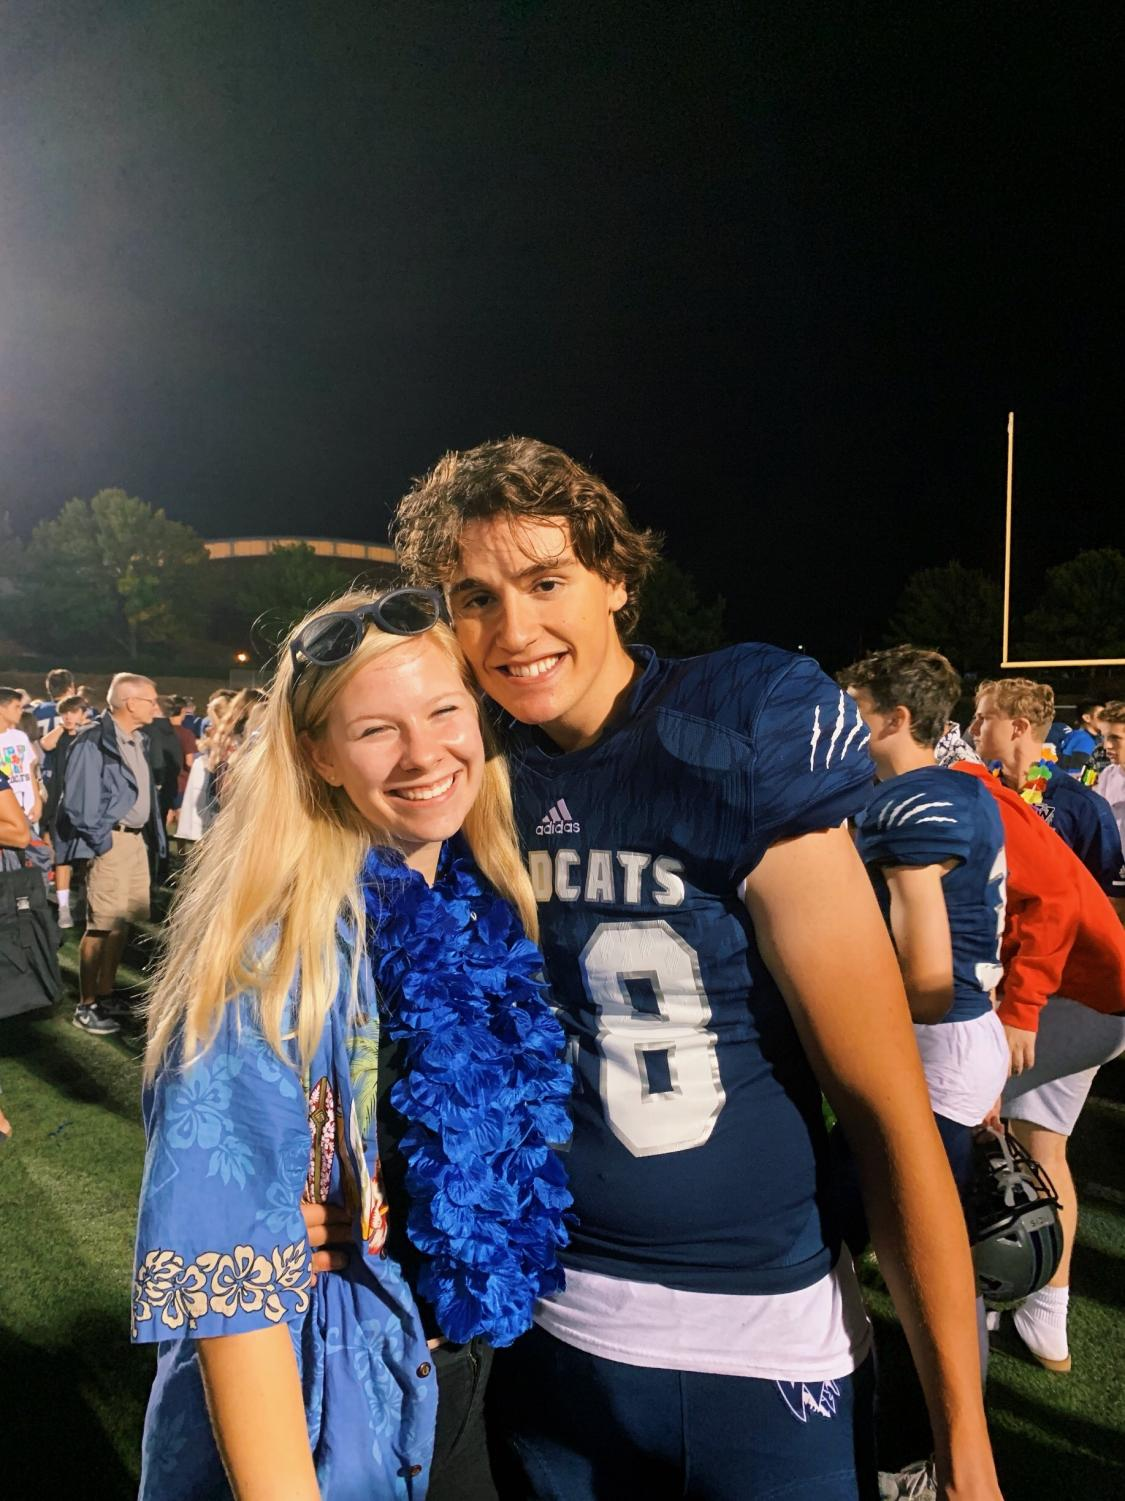 Seniors Meghann Yochim and Jared Wieland pose for a picture after Wilsonville's loss on Friday Photo credit Meghann Yochim